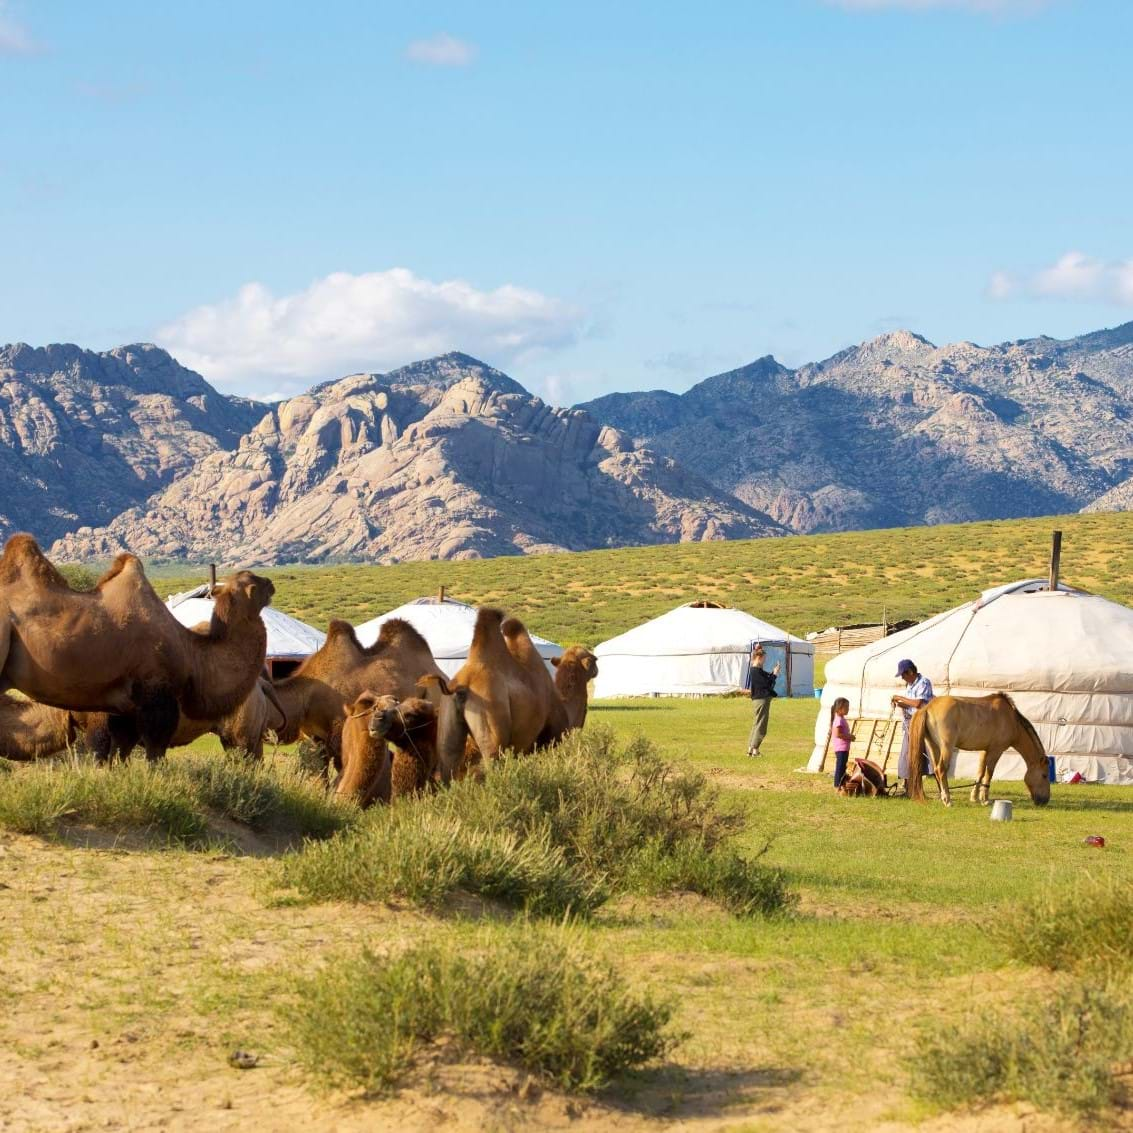 camels and nomads in Mongolia